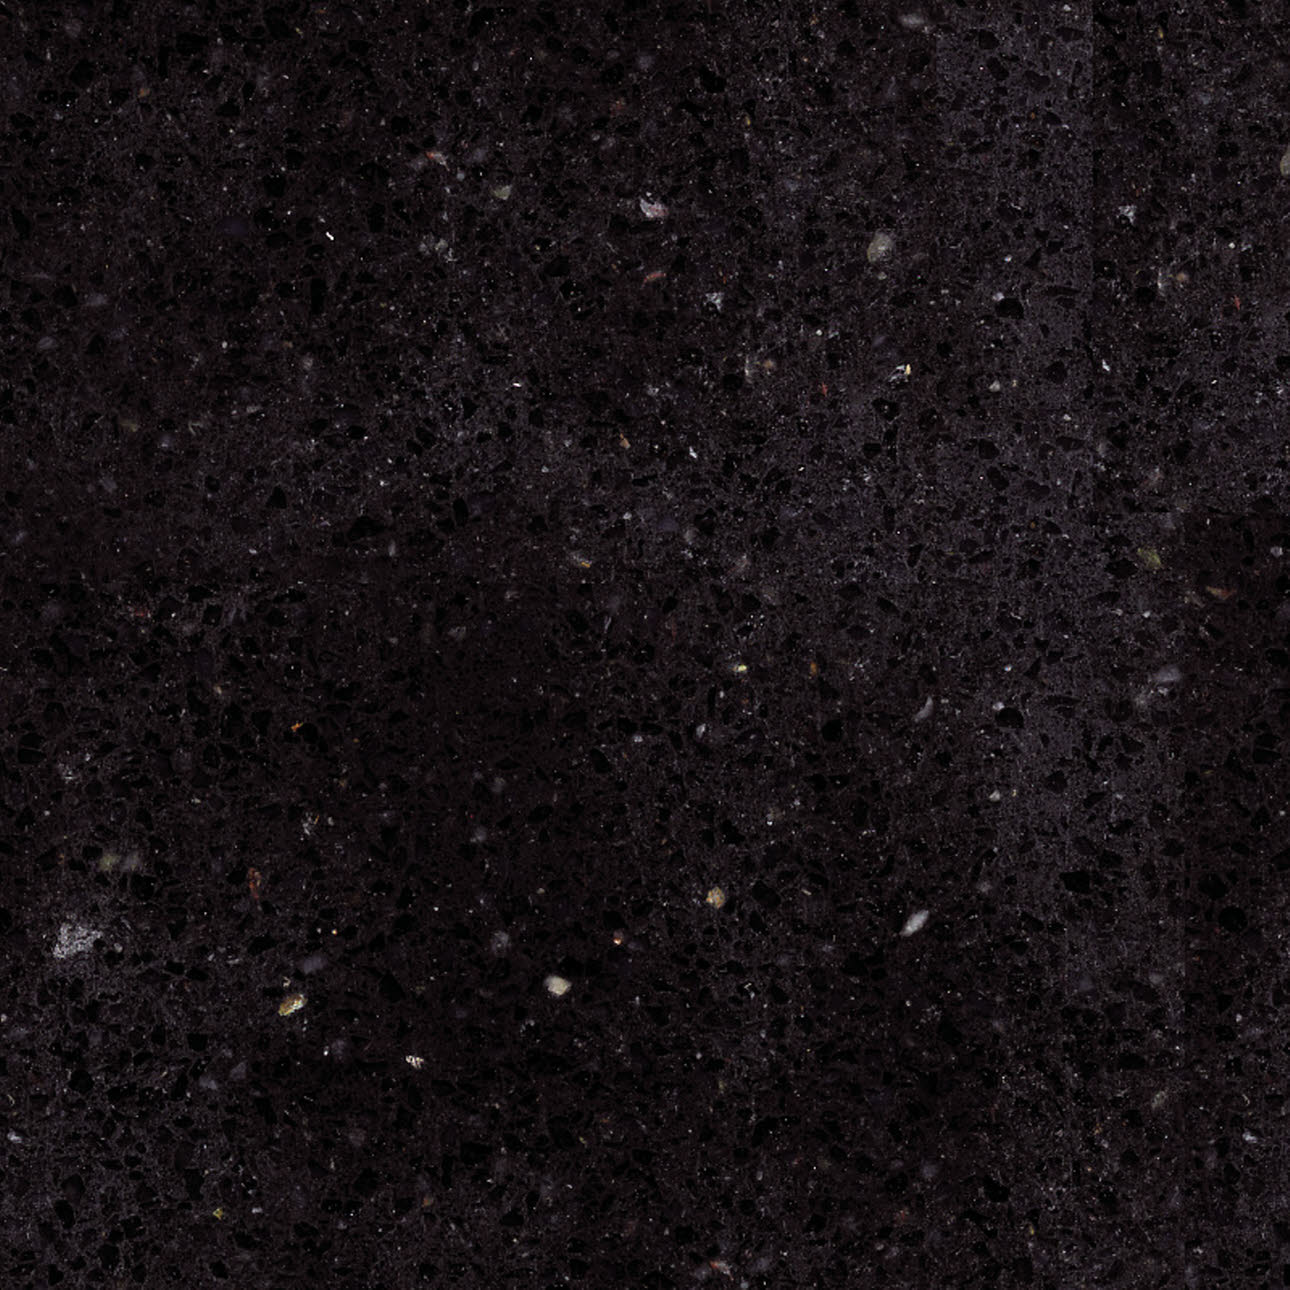 Nebula black granite kitchen worktop, close up